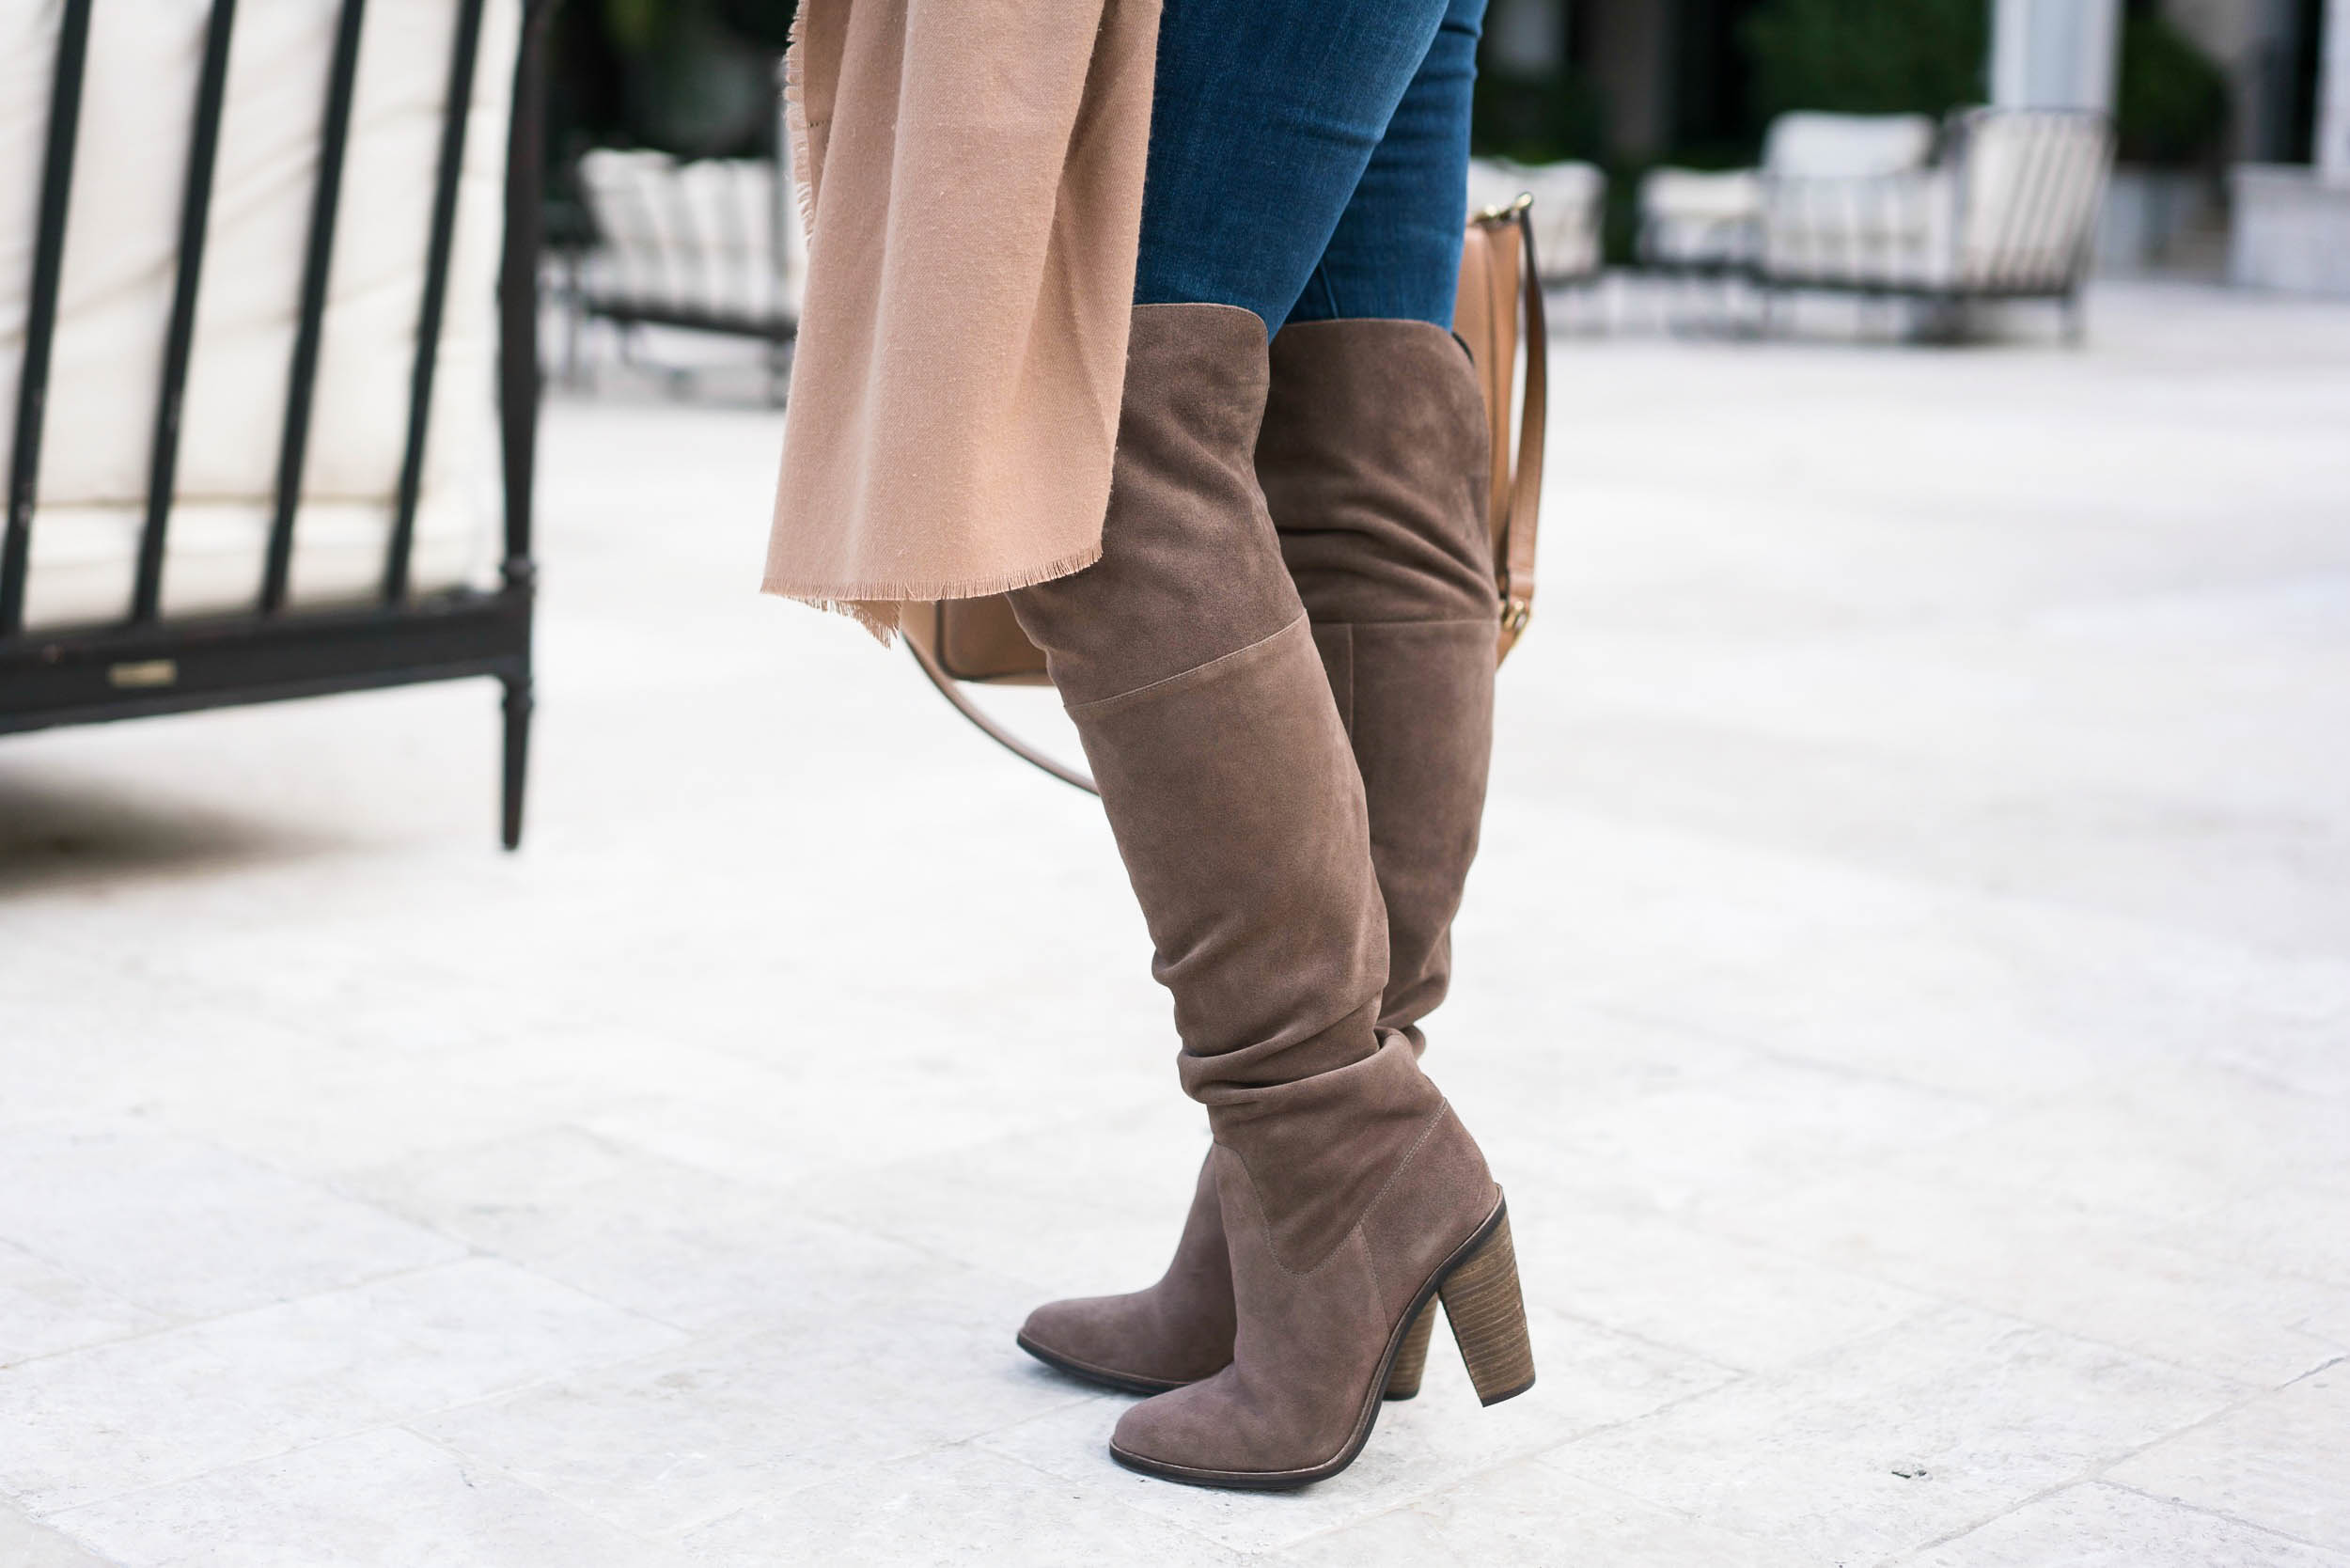 OTK Boots Neutral Looks for Winter | coffeebeansandbobbypins.com | @amy_cbandbp